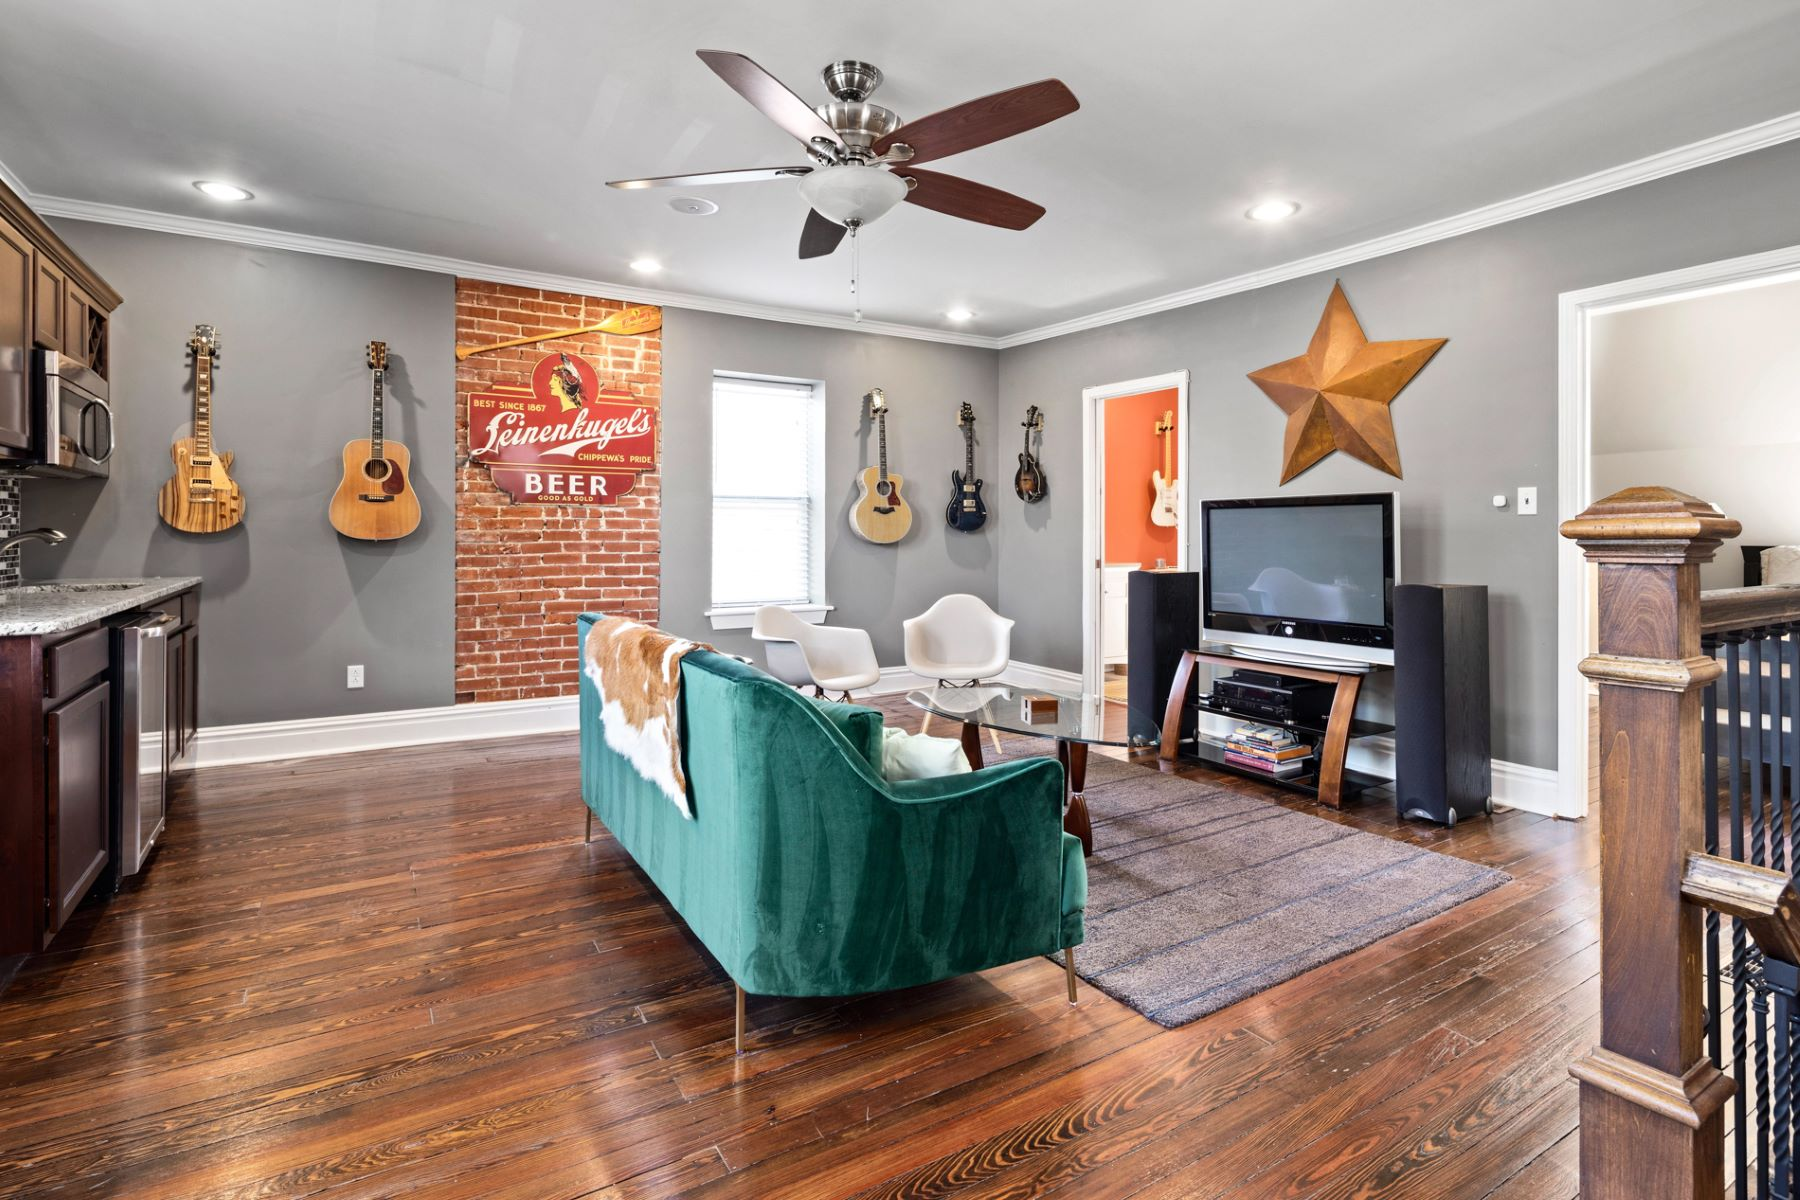 Additional photo for property listing at West Pine Blvd 4161 West Pine Blvd St. Louis, Missouri 63108 United States